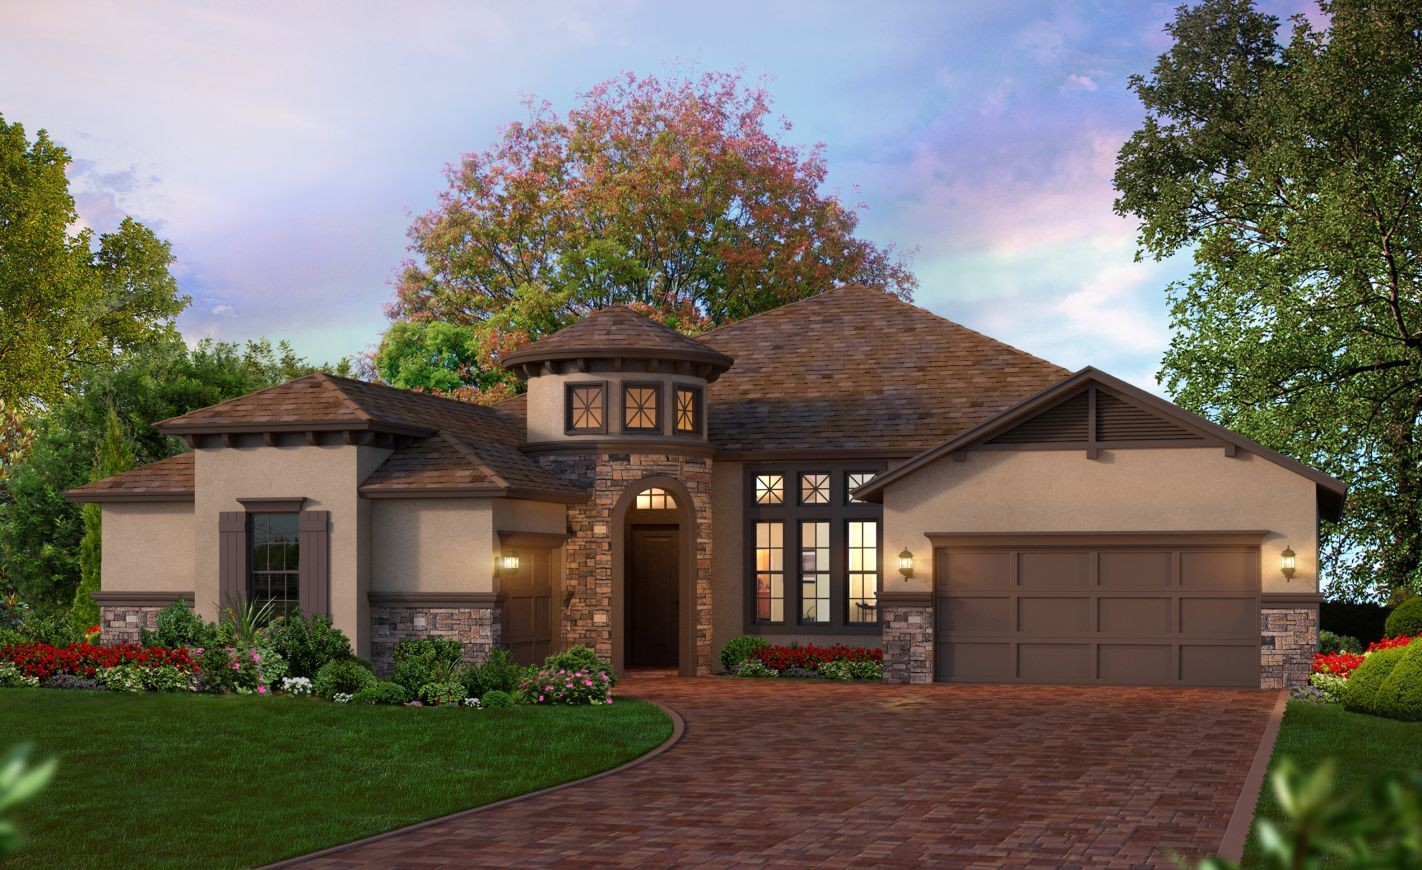 New Homes For Sale Gainesville Fl